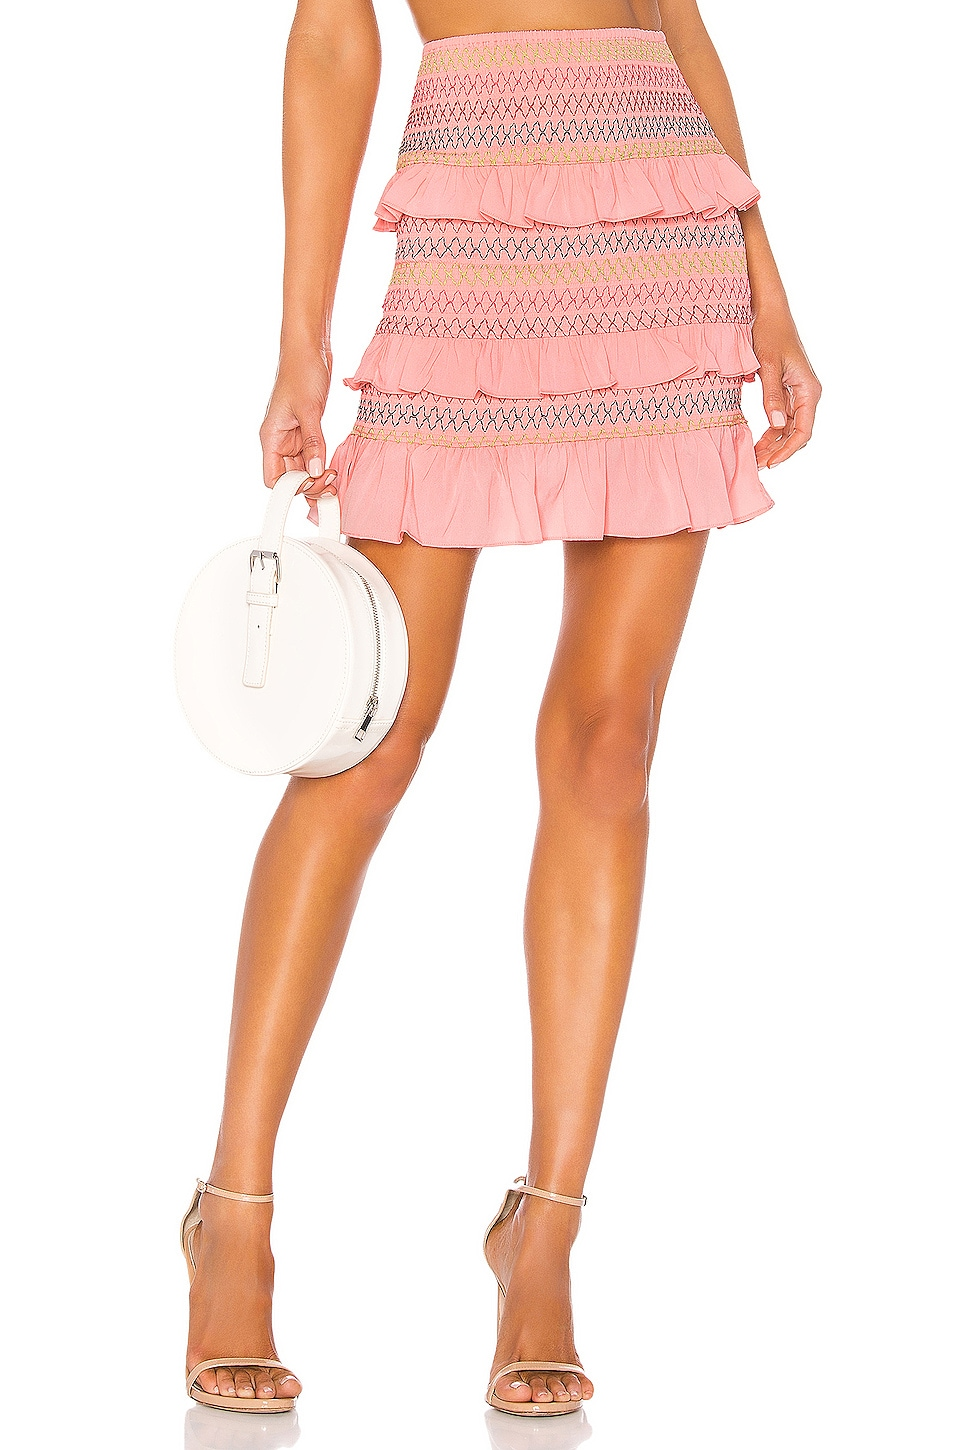 Lovers + Friends Kora Mini Skirt in Pink Lemonade